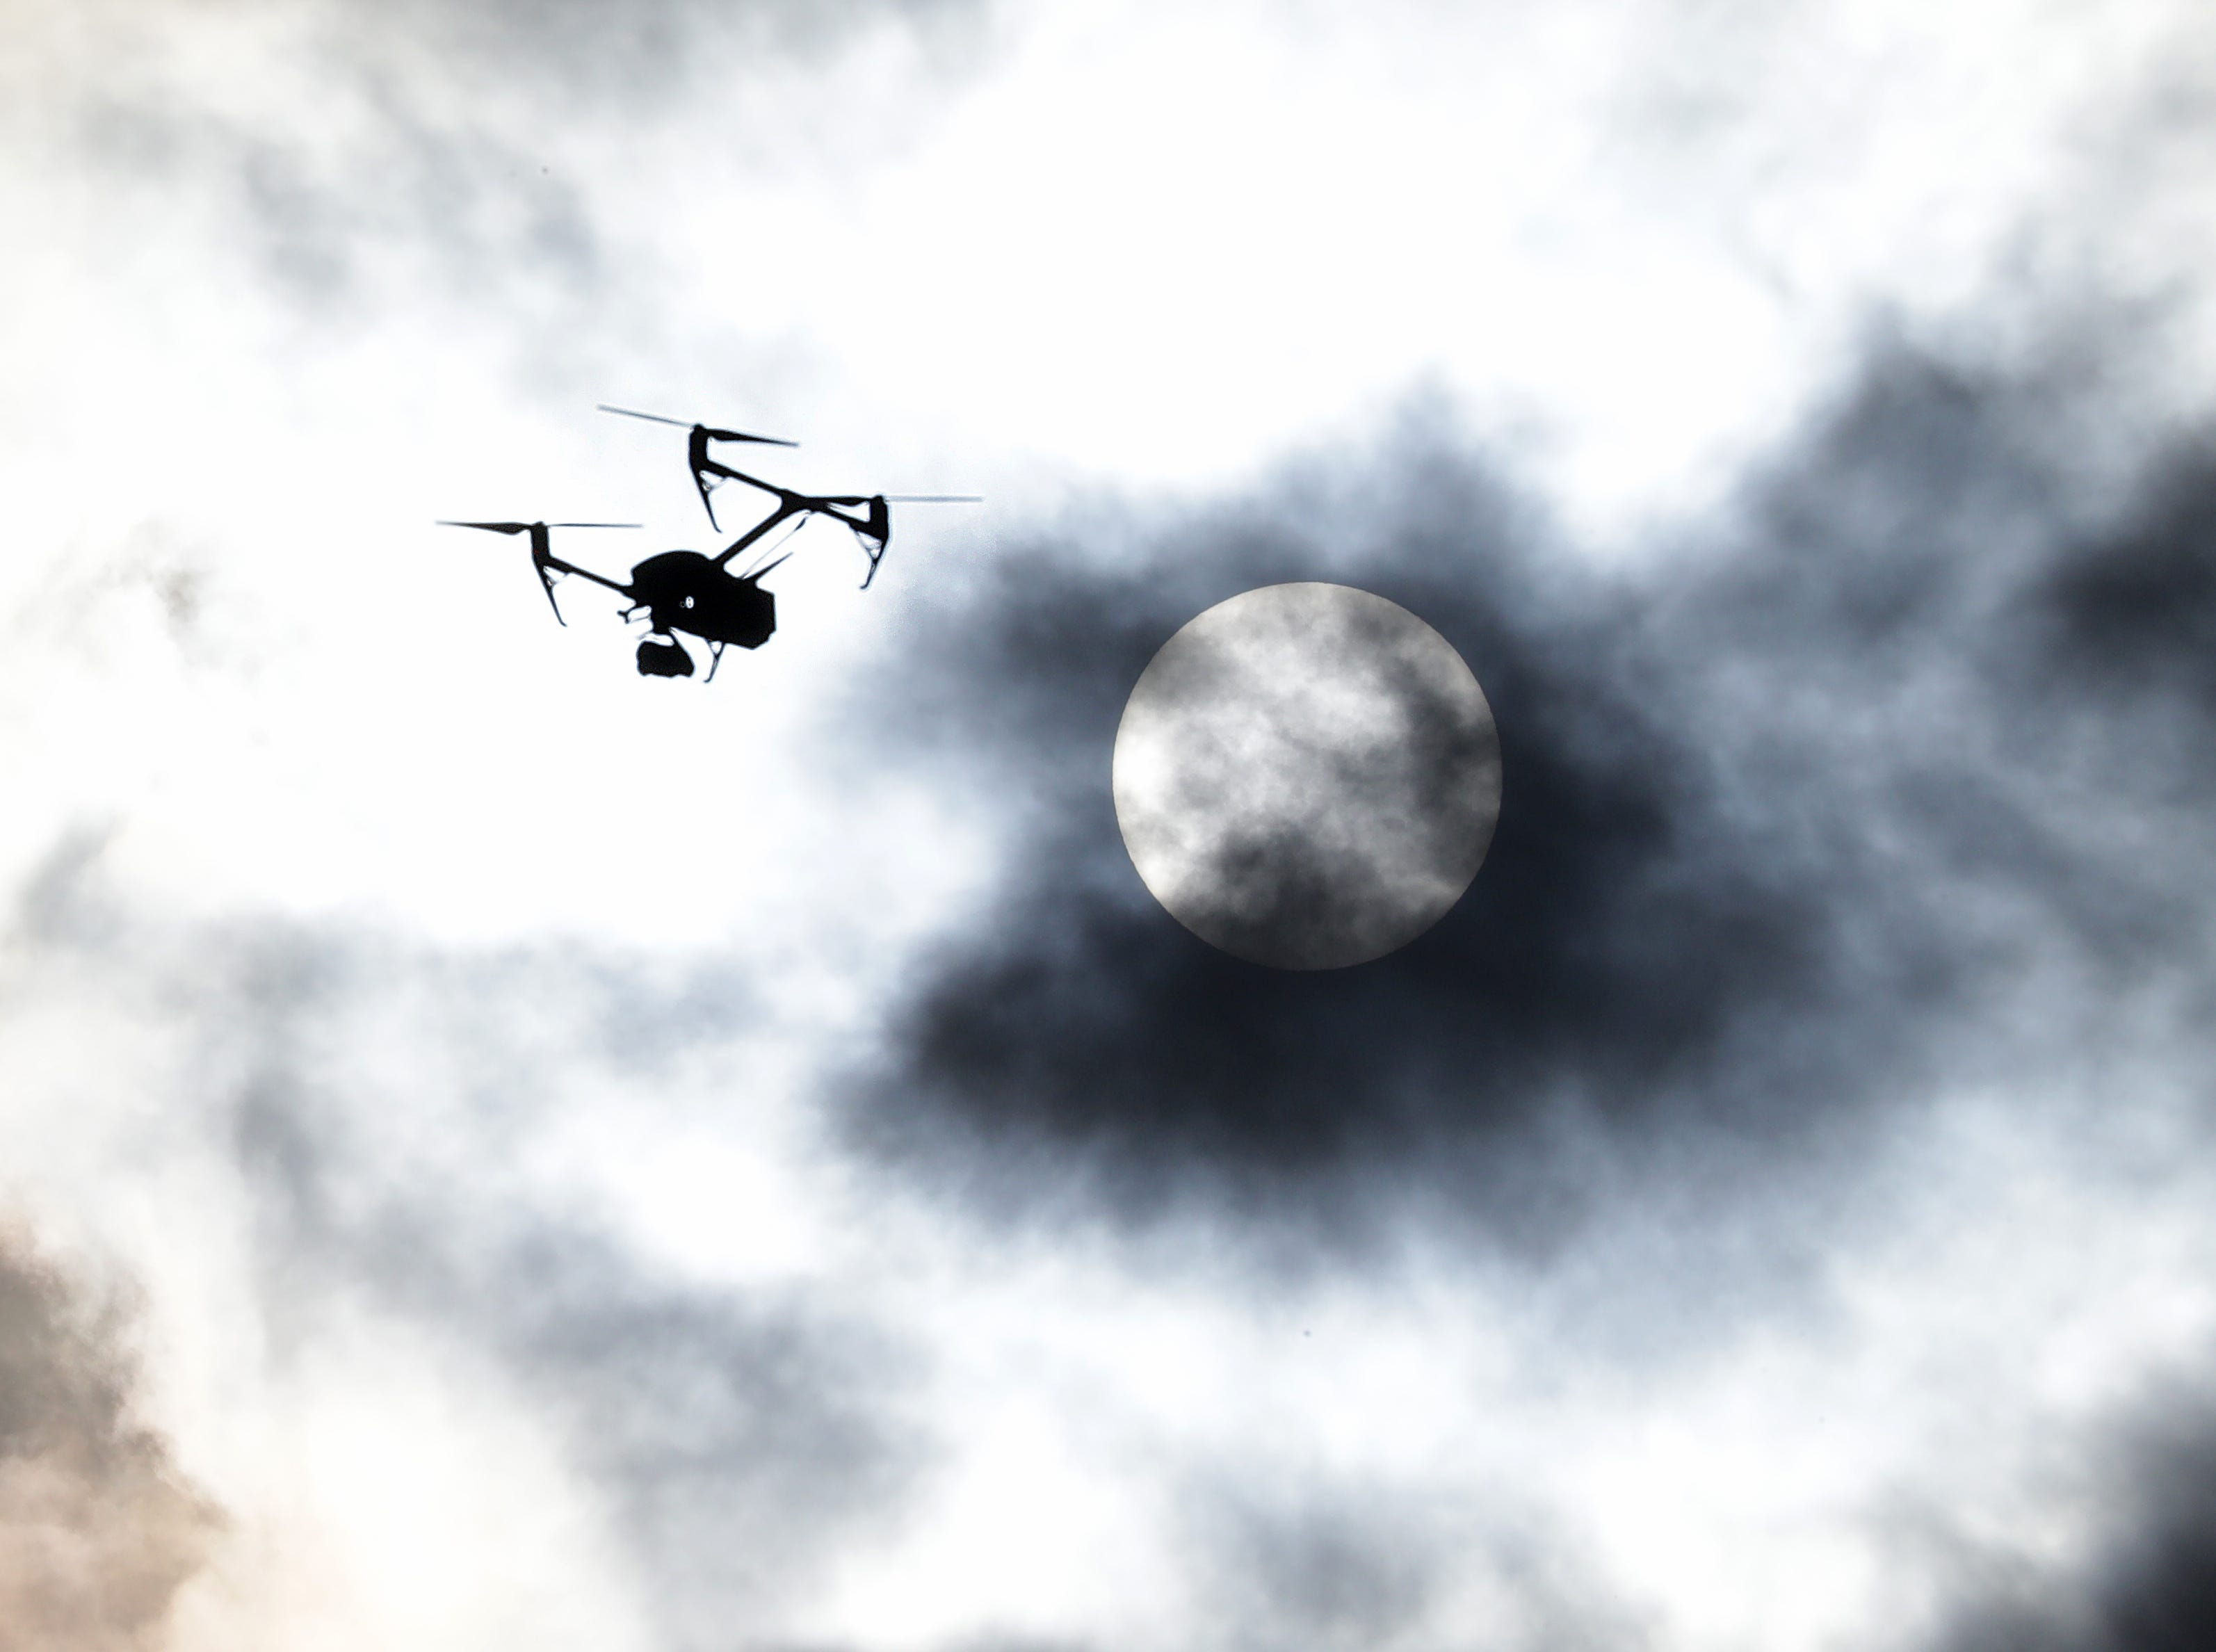 A drone from MKEdrones flies near the Hoan Bridge as a cloud passes over the sun.